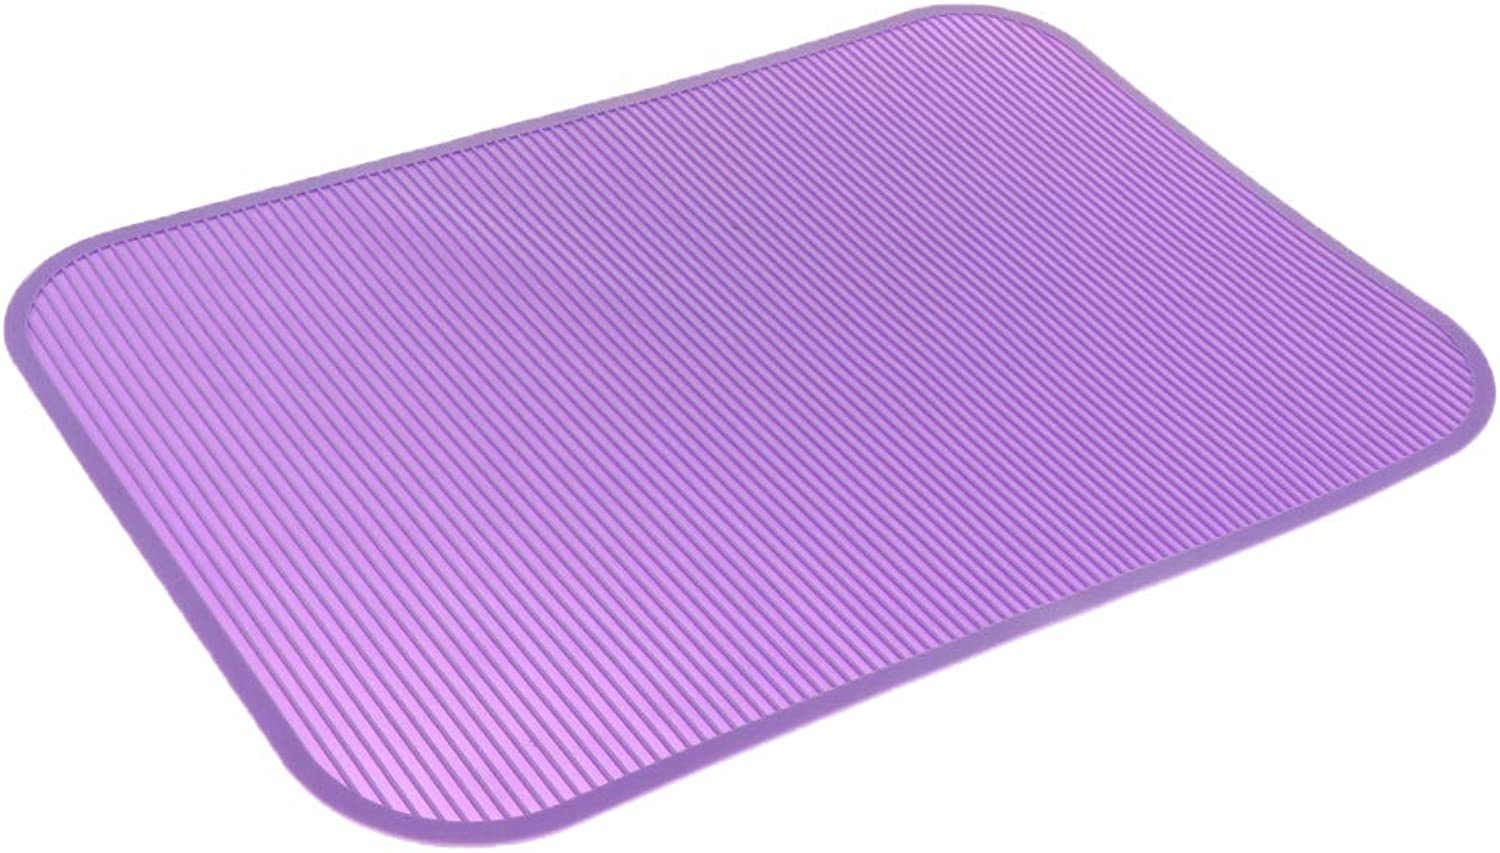 MagiDeal Pet Grooming Table Slip Resistant Rubber Mat for Pets Bathing Training